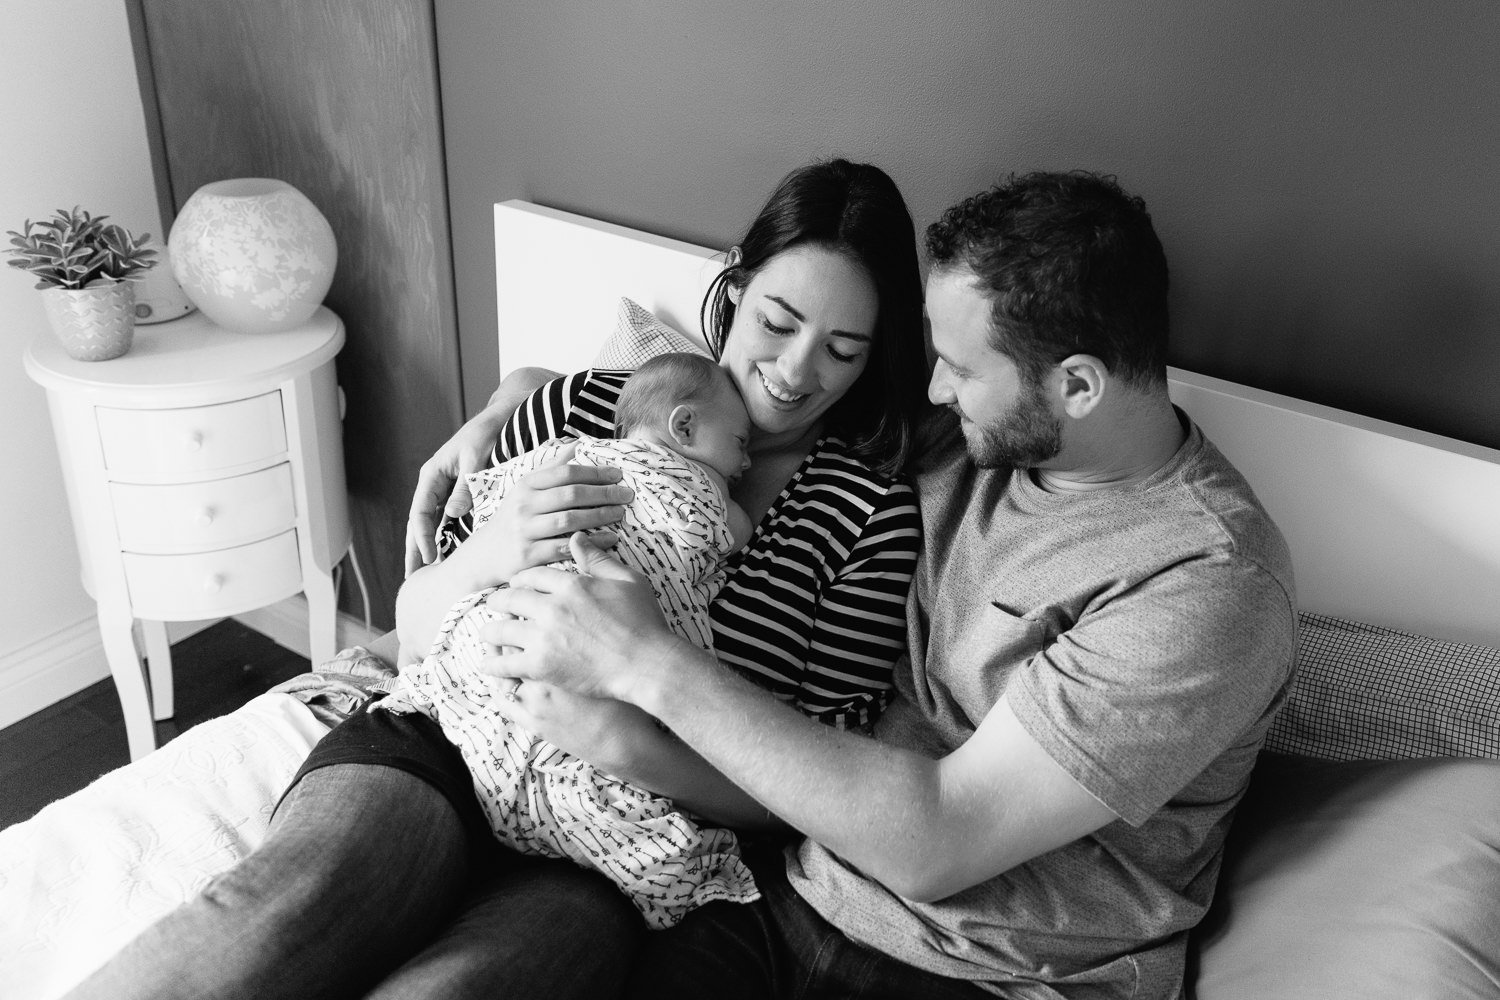 family of 3, new parents cuddle on bed, mom holding 2 week old baby girl covered with black and white swaddle, dad embracing wife and daughter - Uxbridge Lifestyle Photography